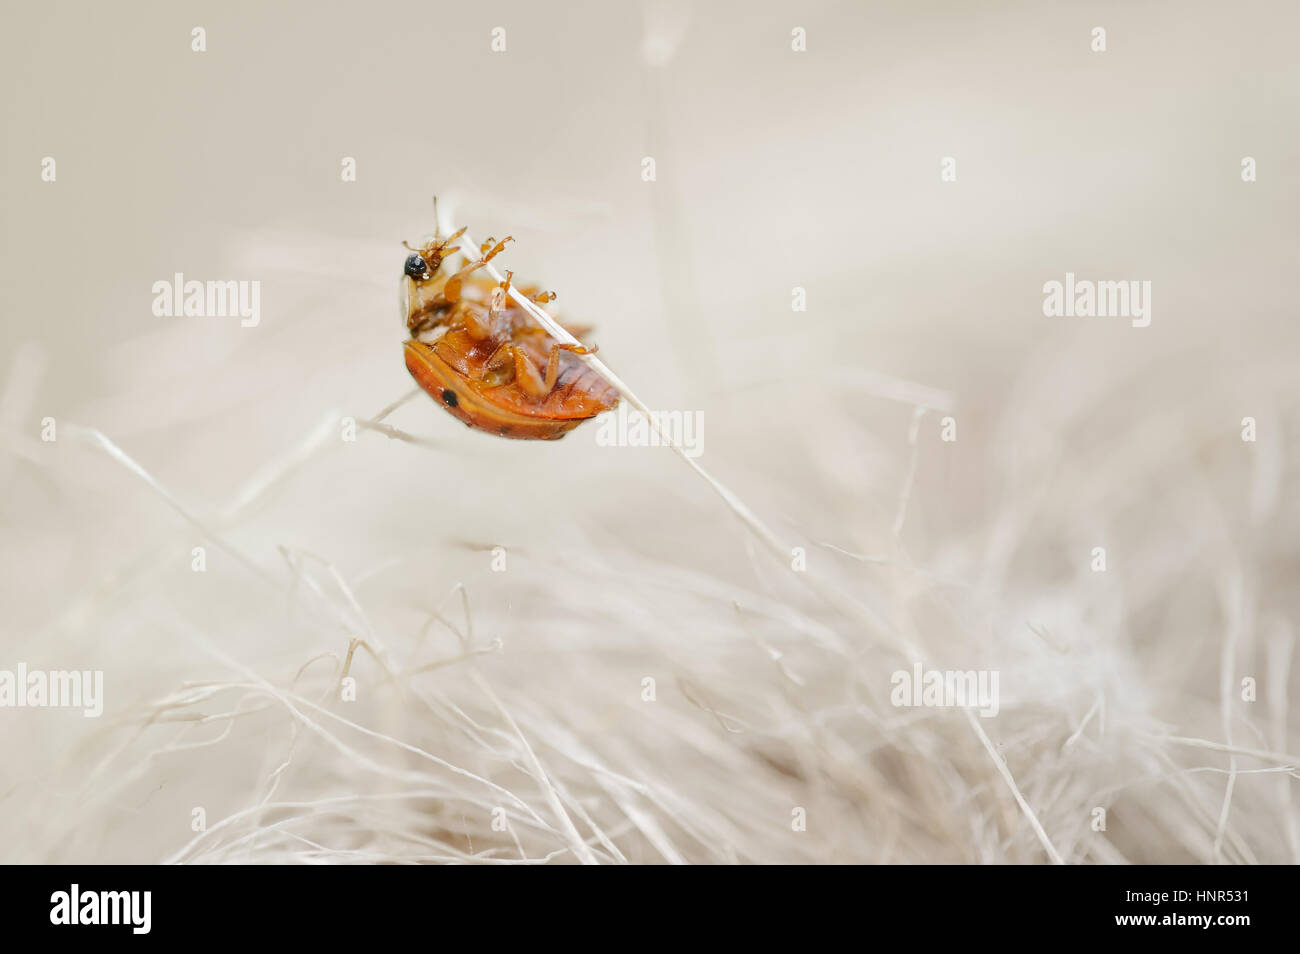 Ladybug looking like a monster from horror. Scary bug climbing on beige stalks. - Stock Image